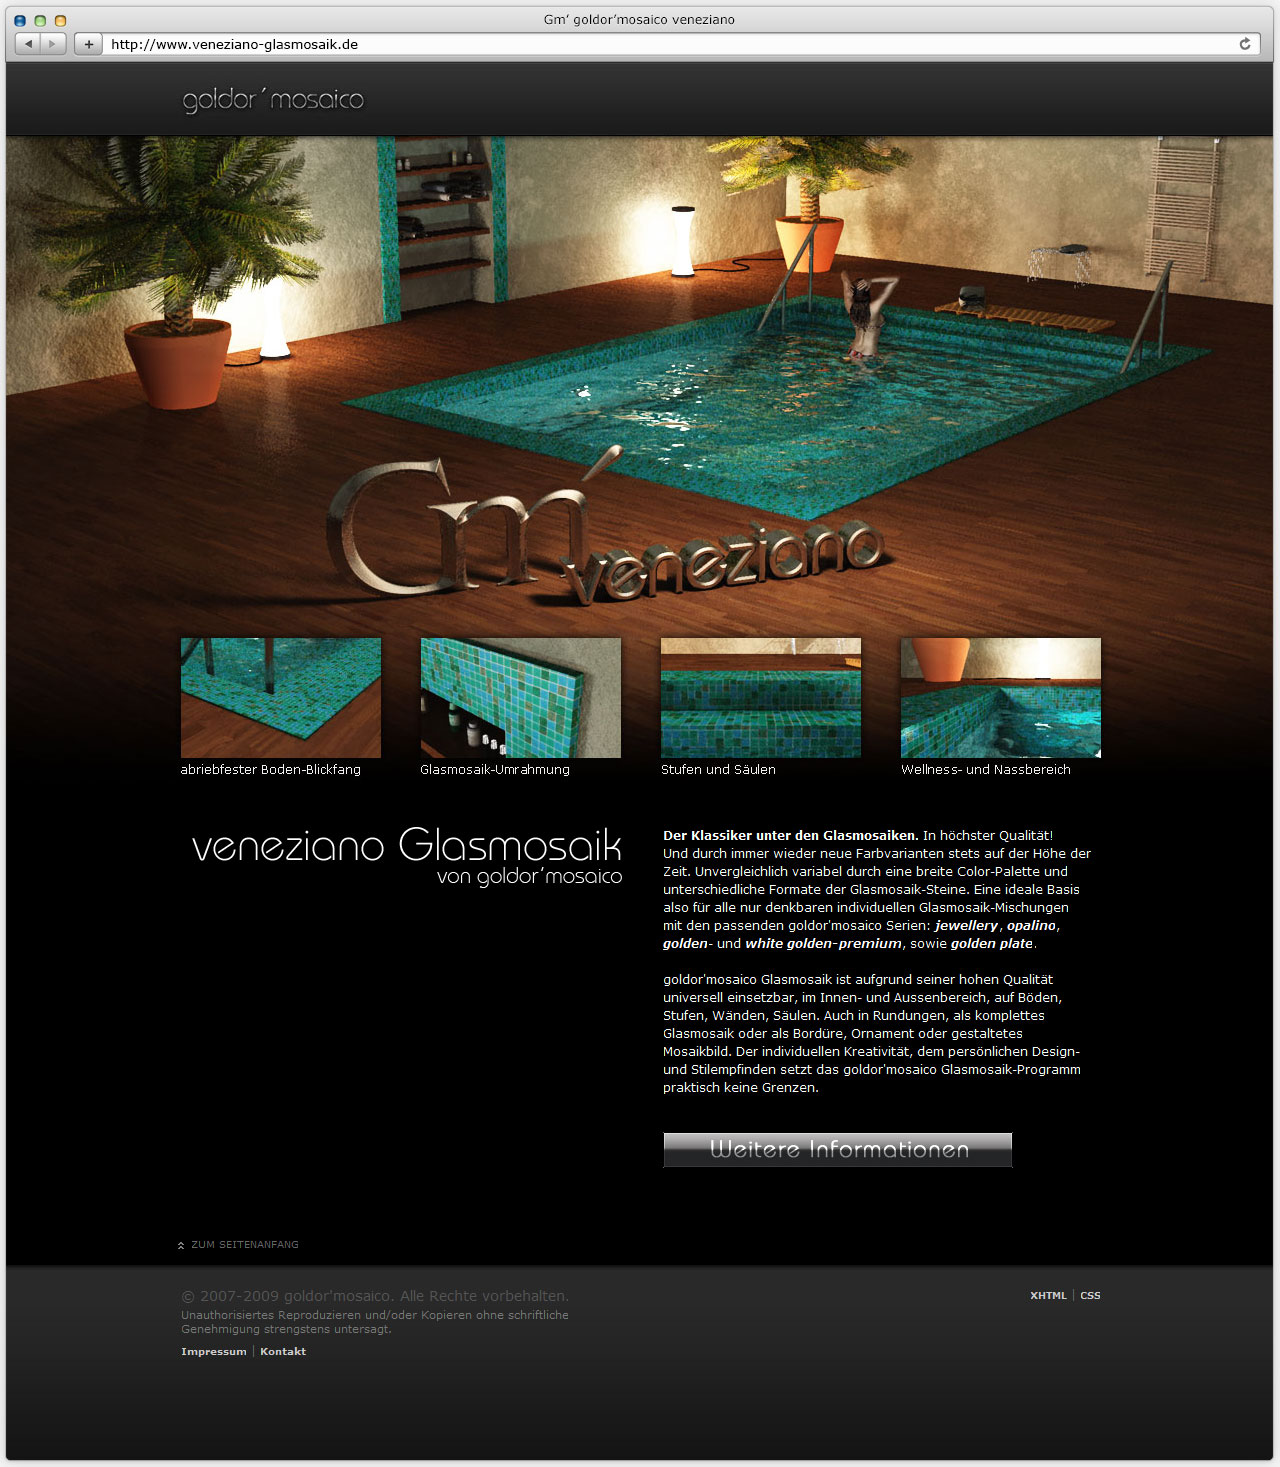 veneziano-glasmosaik_website_01